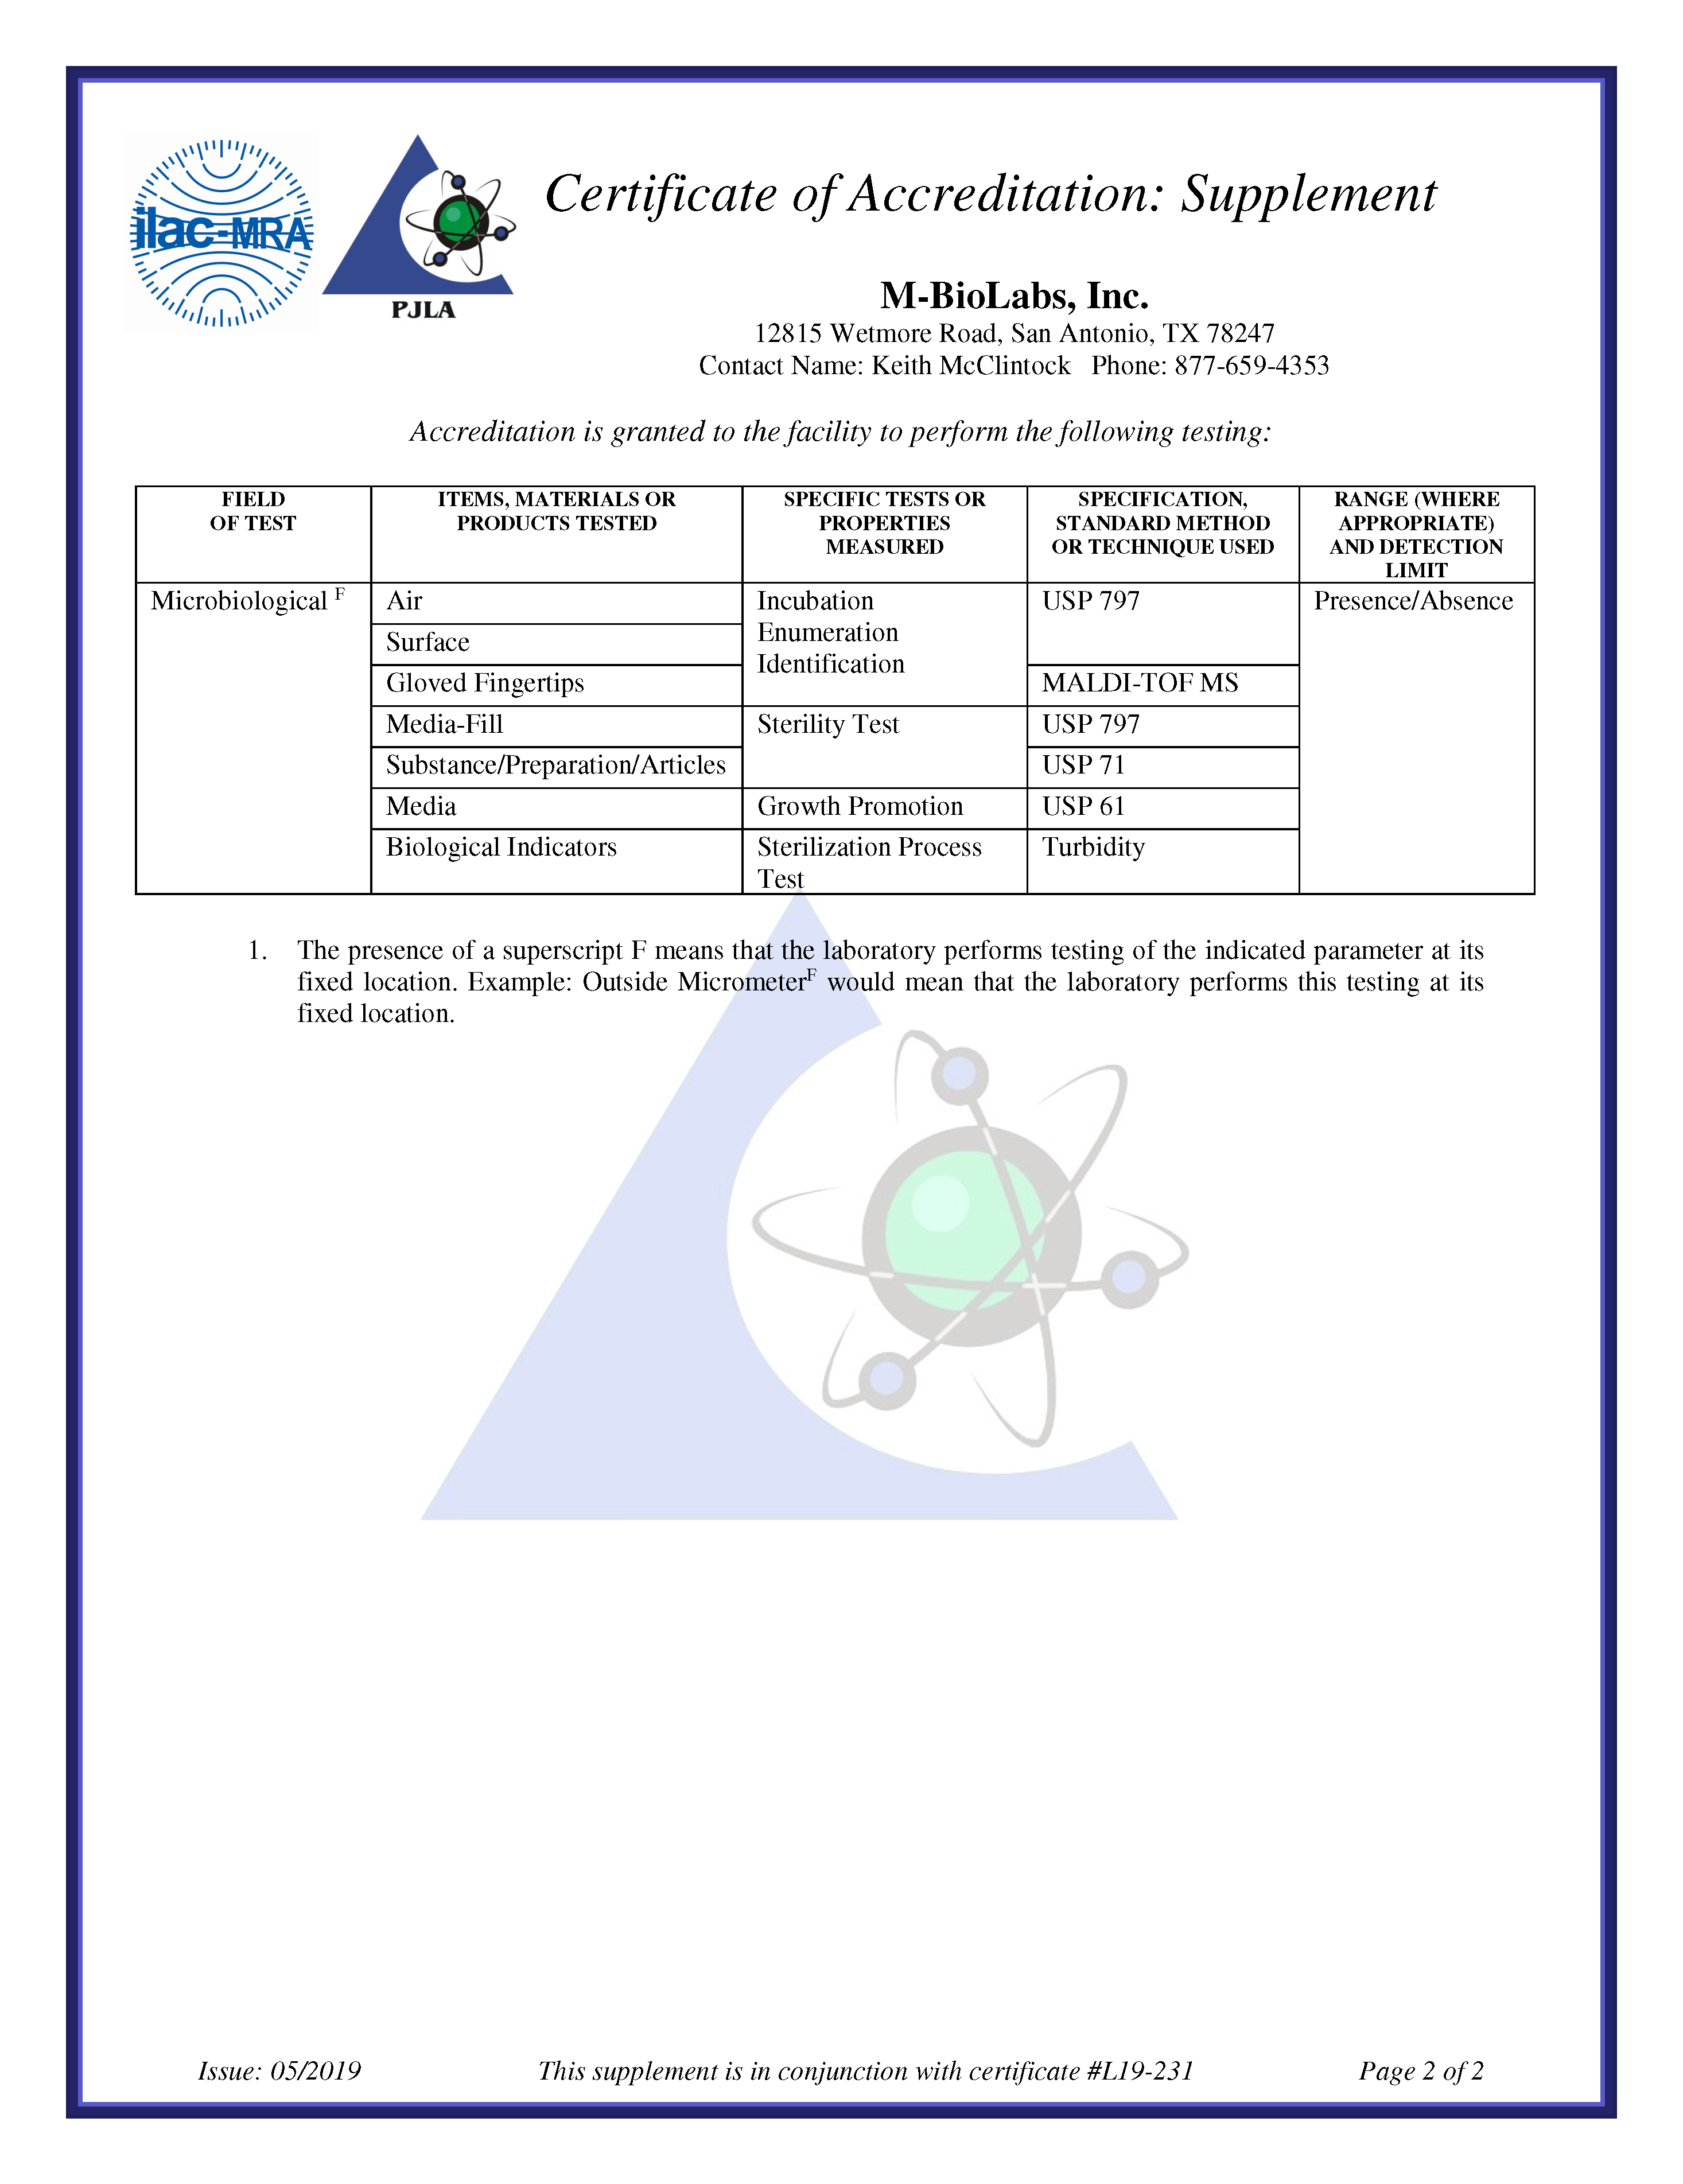 ISO 17025 Accrediation